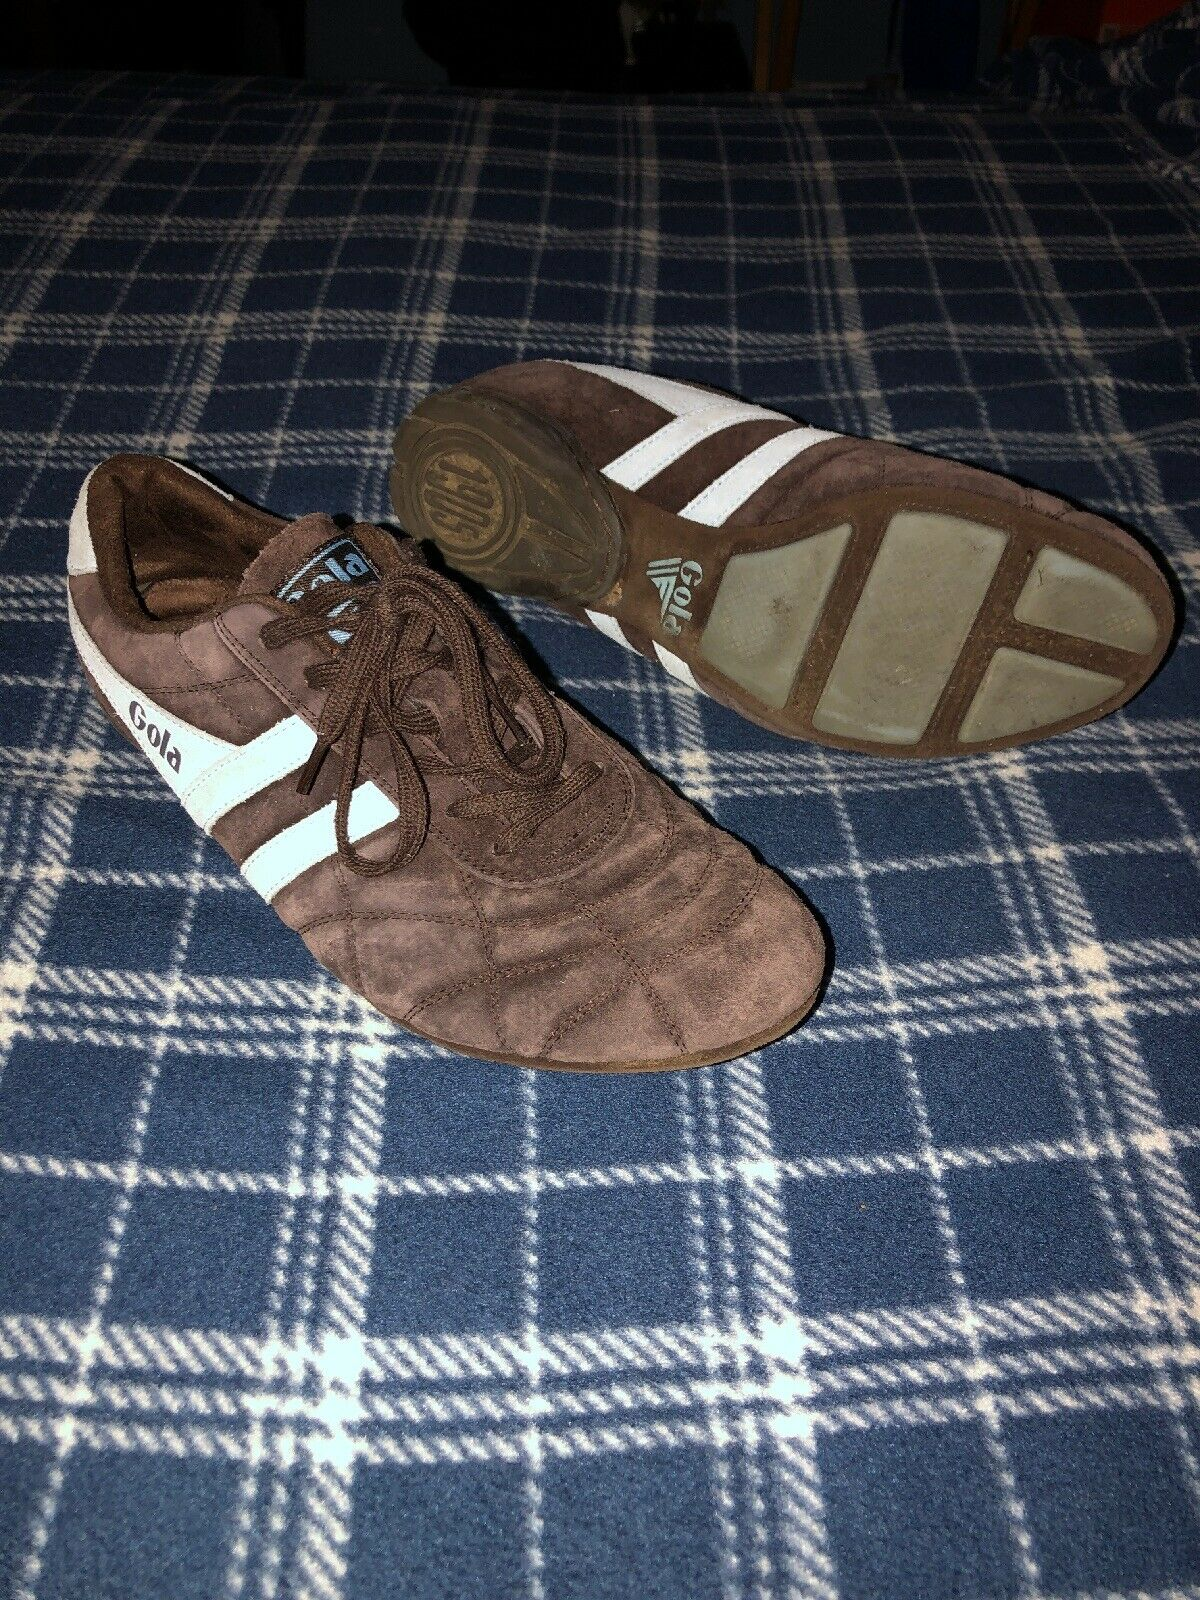 Gola Mens Leather shoes USED - Size 10